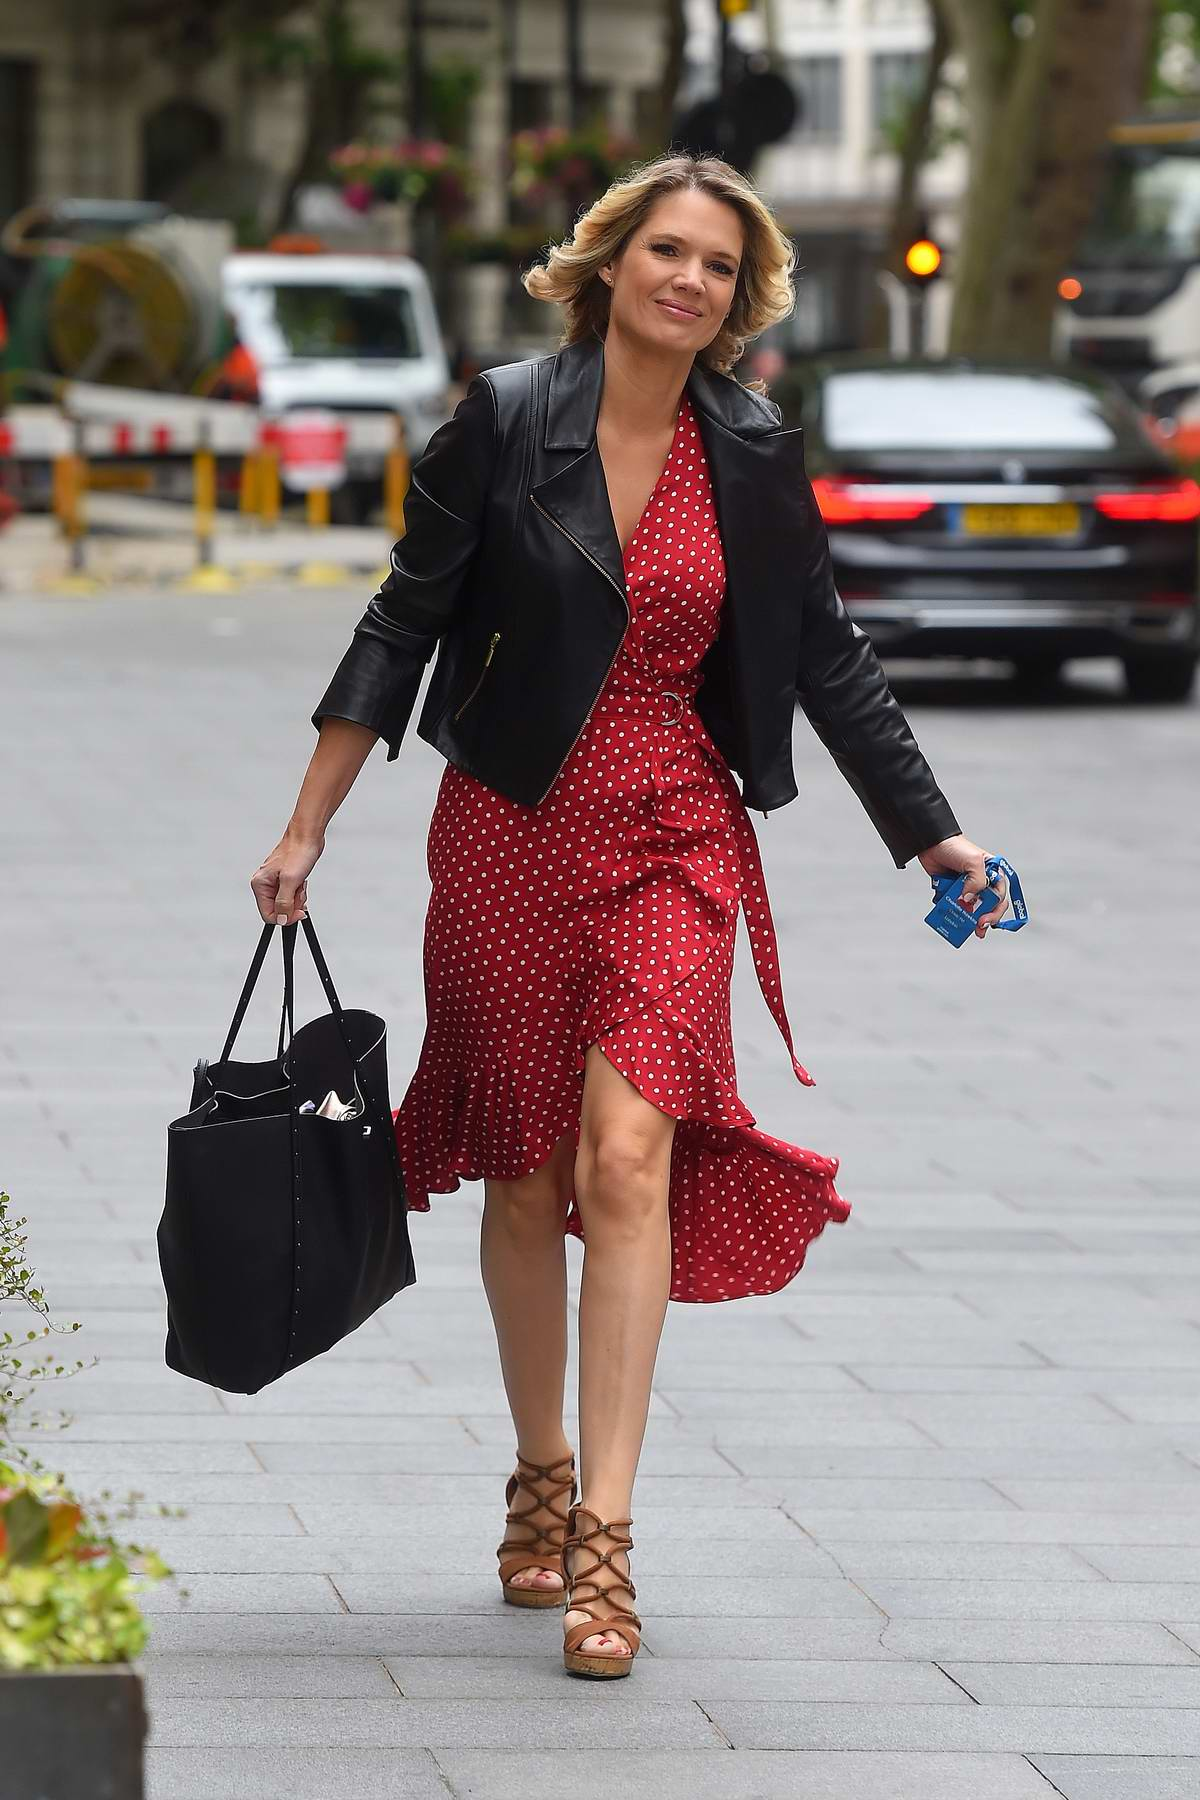 Charlotte Hawkins wears a red and white polka dot dress with a leather jacket as she arrives at Global Radio in London, UK